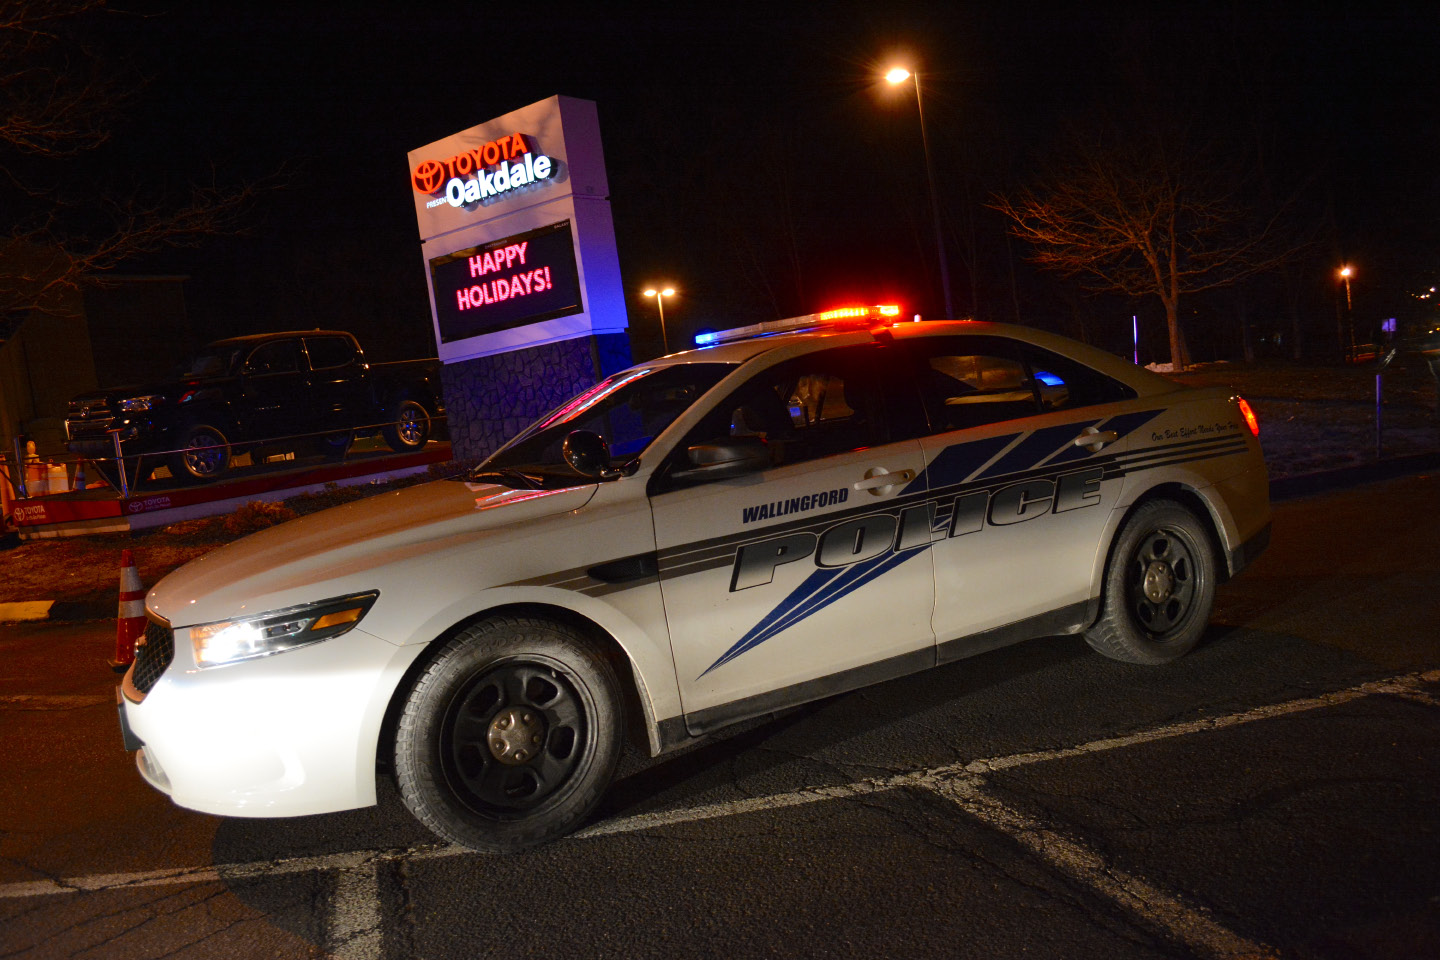 Four people were shot and two were killed following a concert at the Oakdale Theatre in Wallingford on Friday, Dec. 30. | Bryan Lipiner, Record-Journal